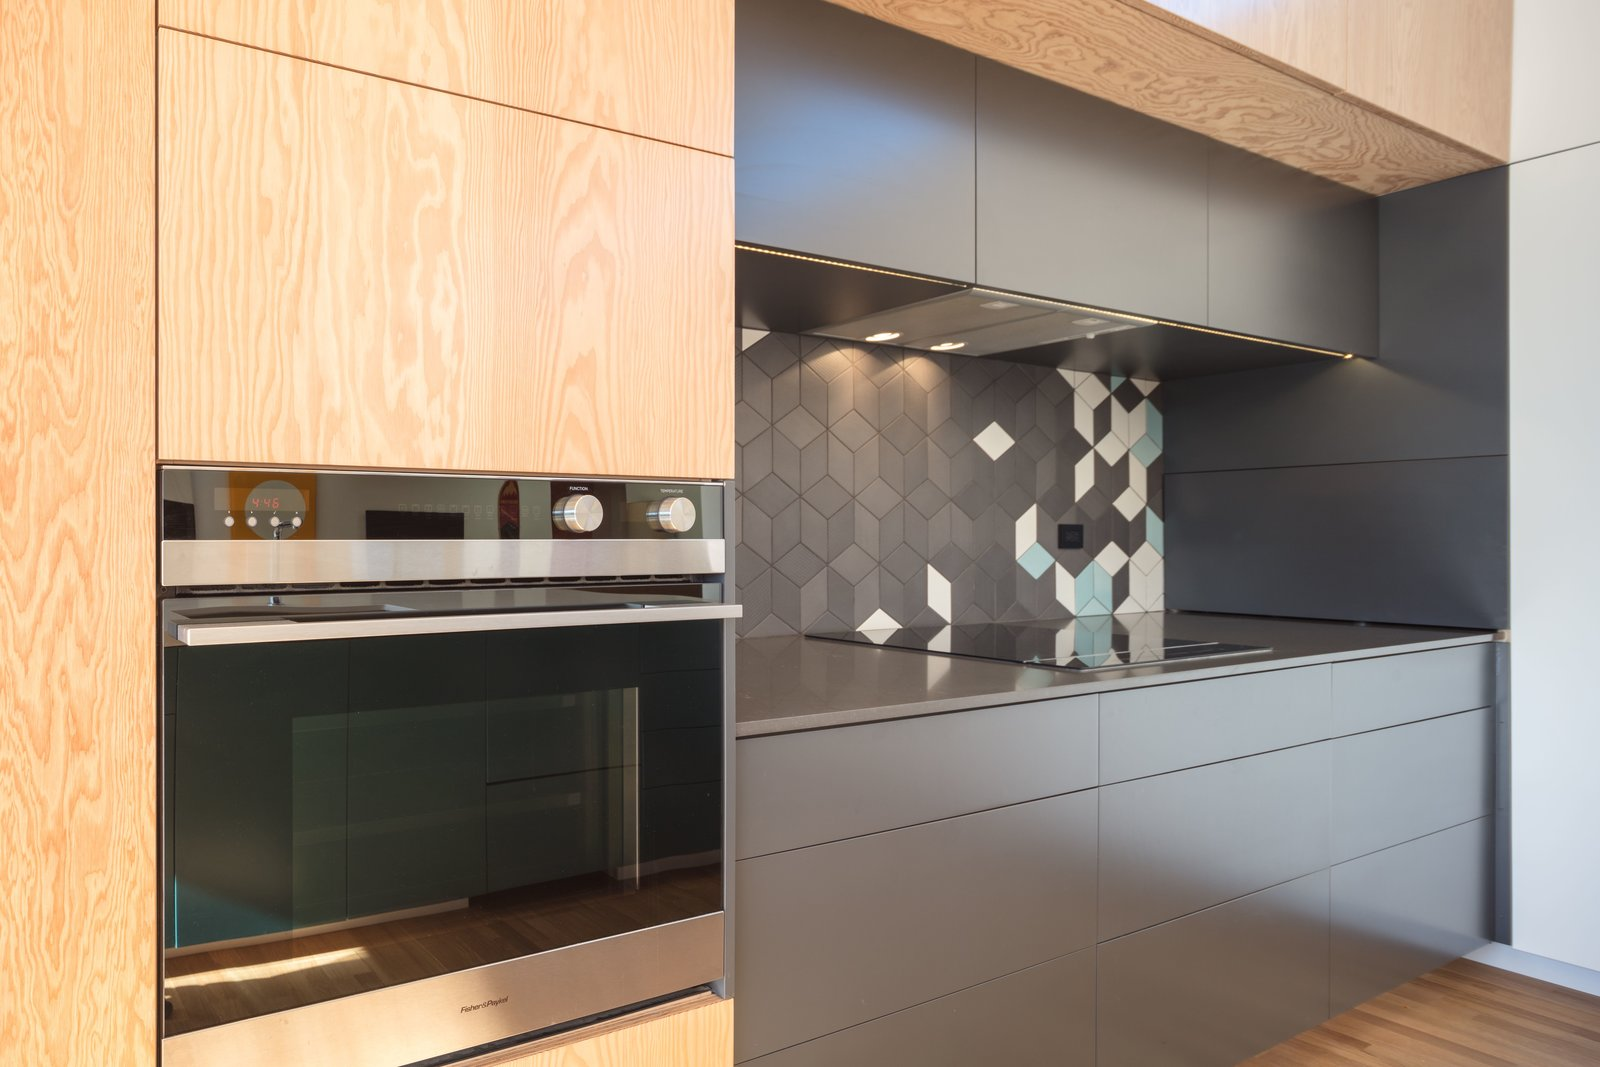 Marine Grade plywood cabintery + FisherPaykel appliances   The Beach Lab by Surfside Projects